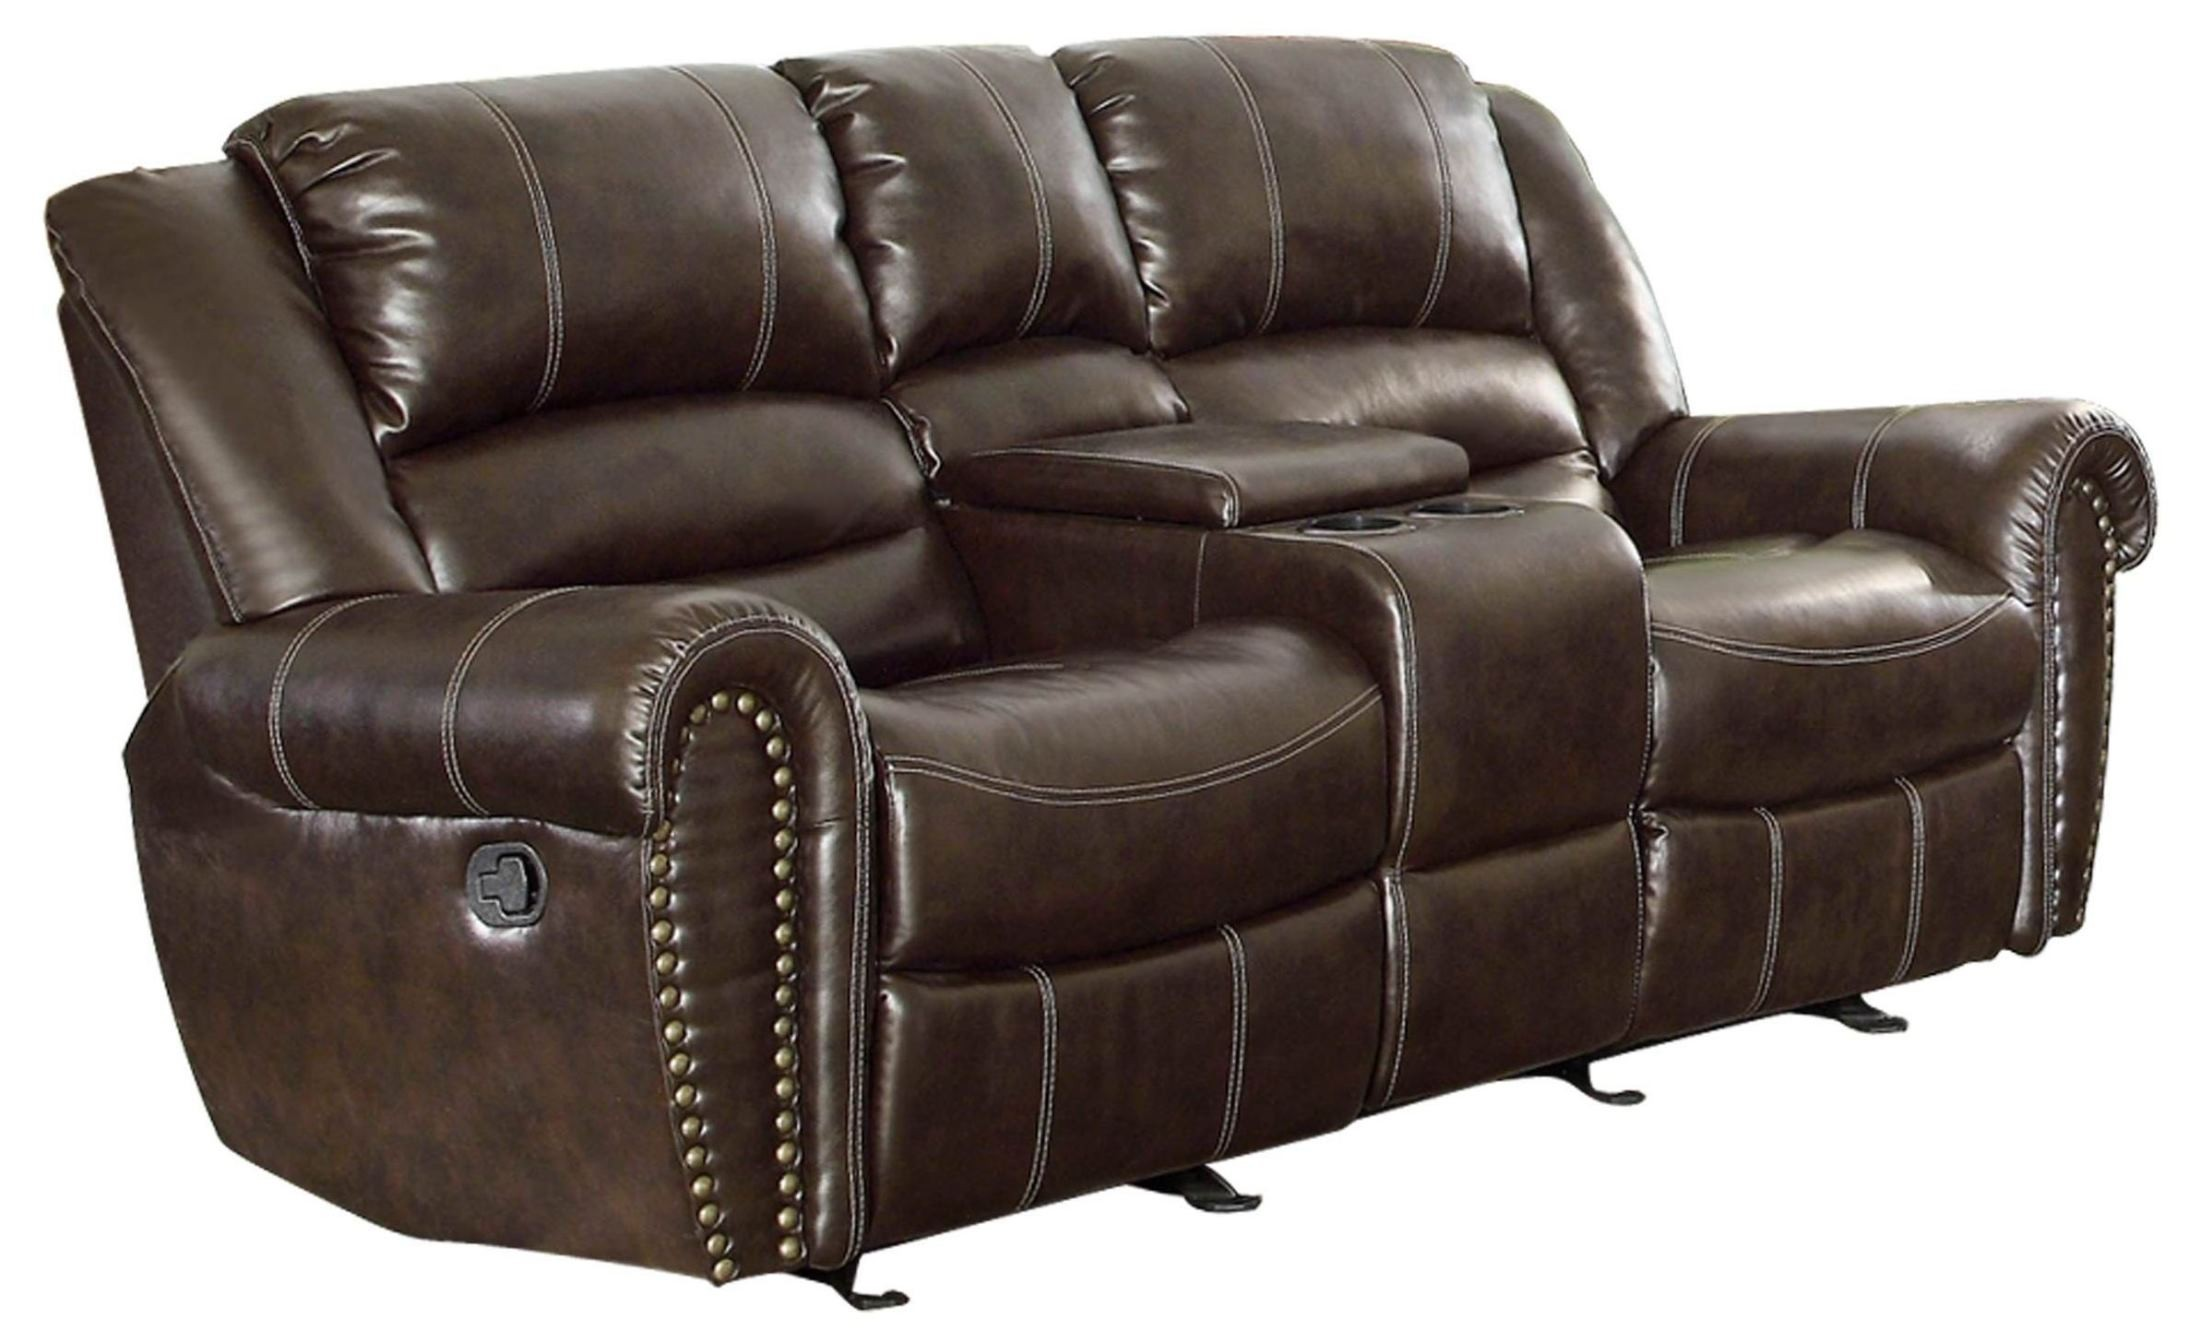 Center Hill Dark Brown Power Double Reclining Console Loveseat From Homelegance 9668brw 2pw